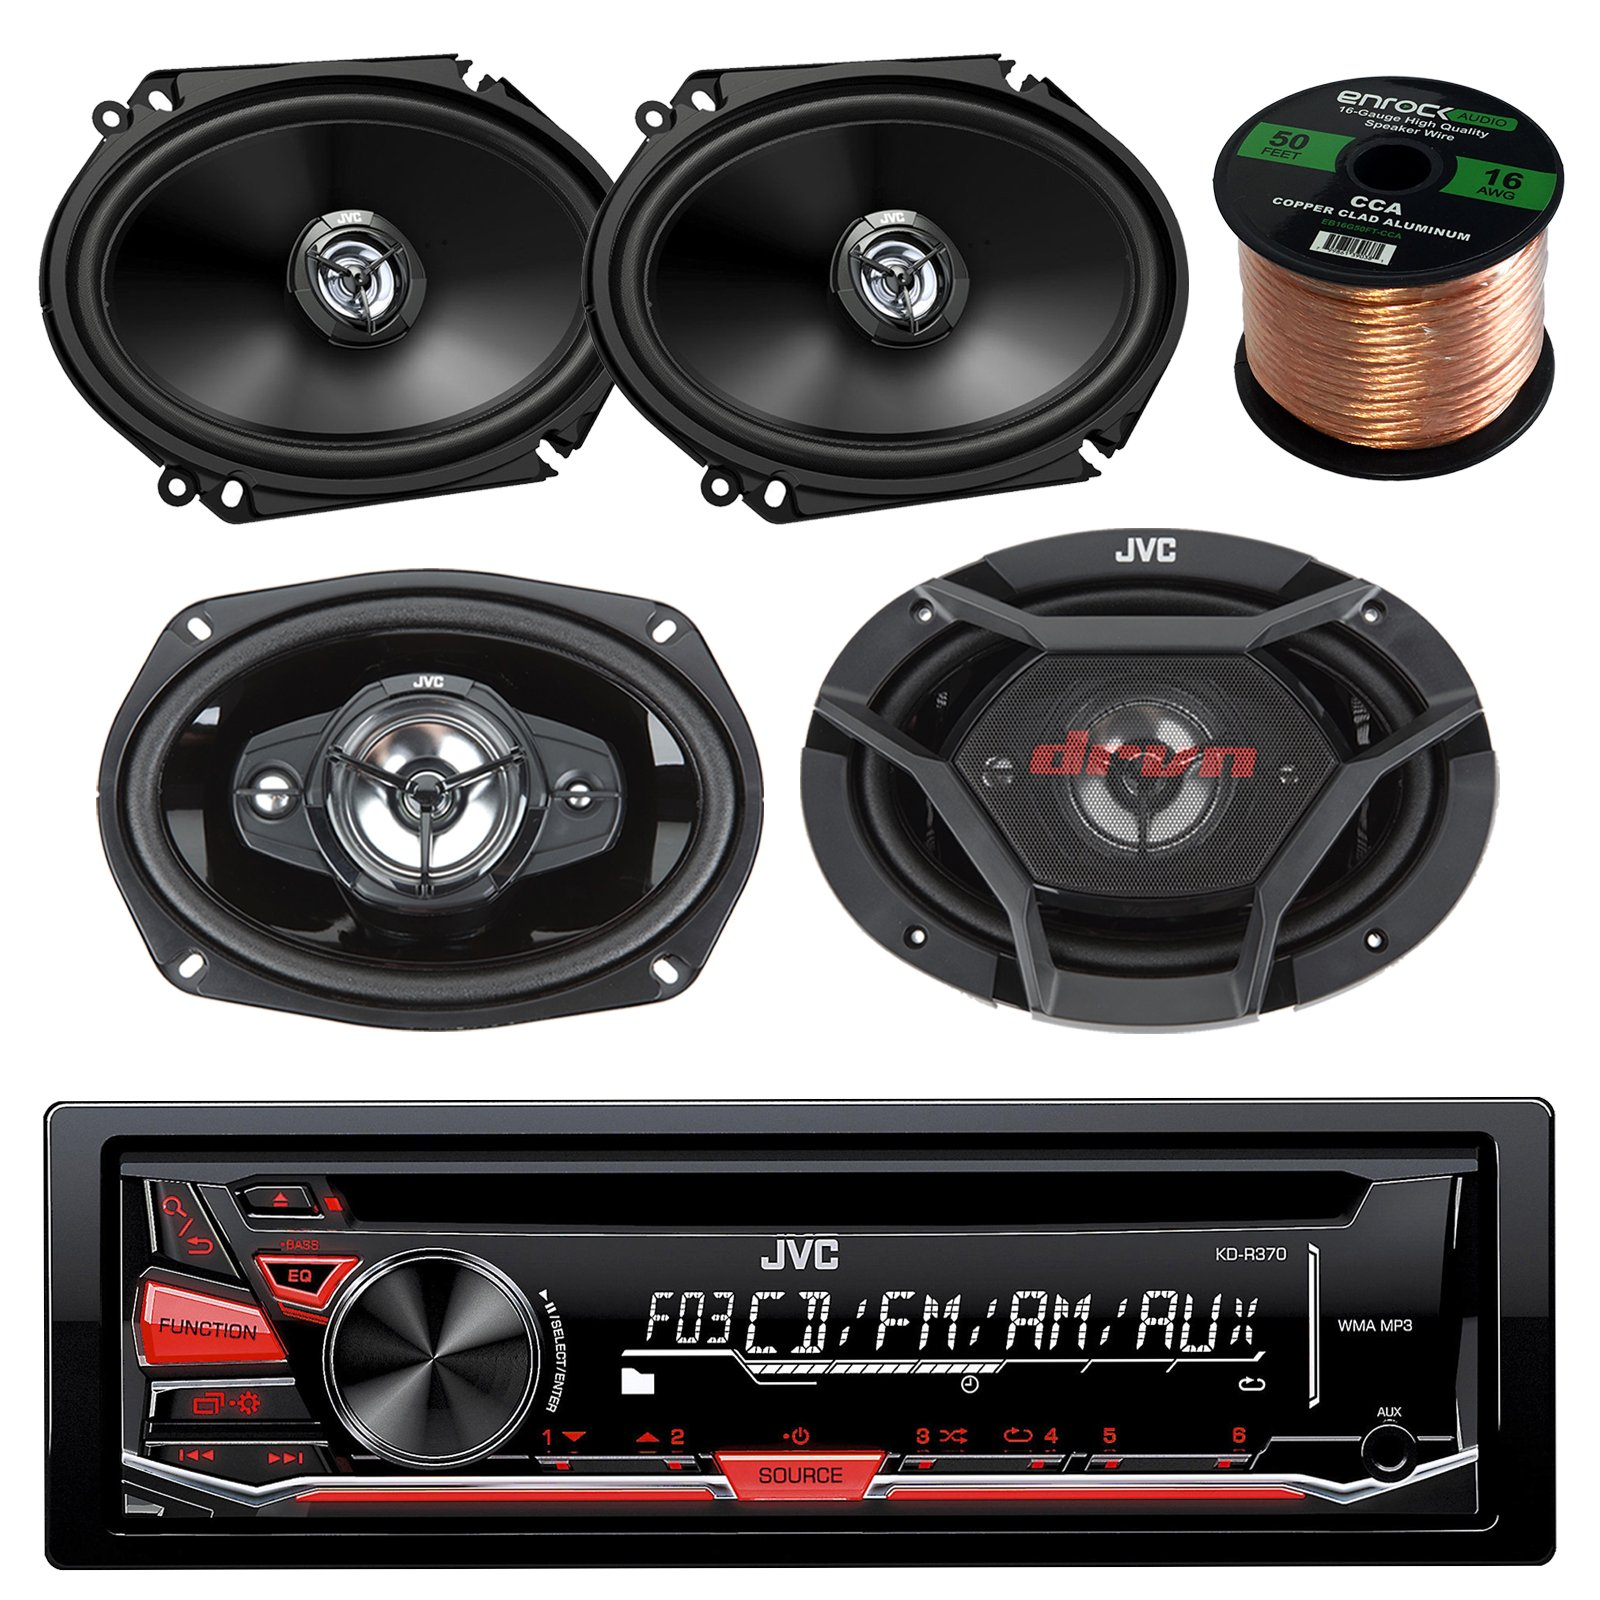 JVC KD-R370 CD/MP3 AM/FM Radio Player Car Receiver Bundle Combo With 2x CS-DR6820 300-Watt 6x8'' Inch Vehicle Coaxial Speakers + 2x DR6930 6x9'' Inch 3-Way Audio Speakers + Enrock 50 Feet 16-Gauge Wire